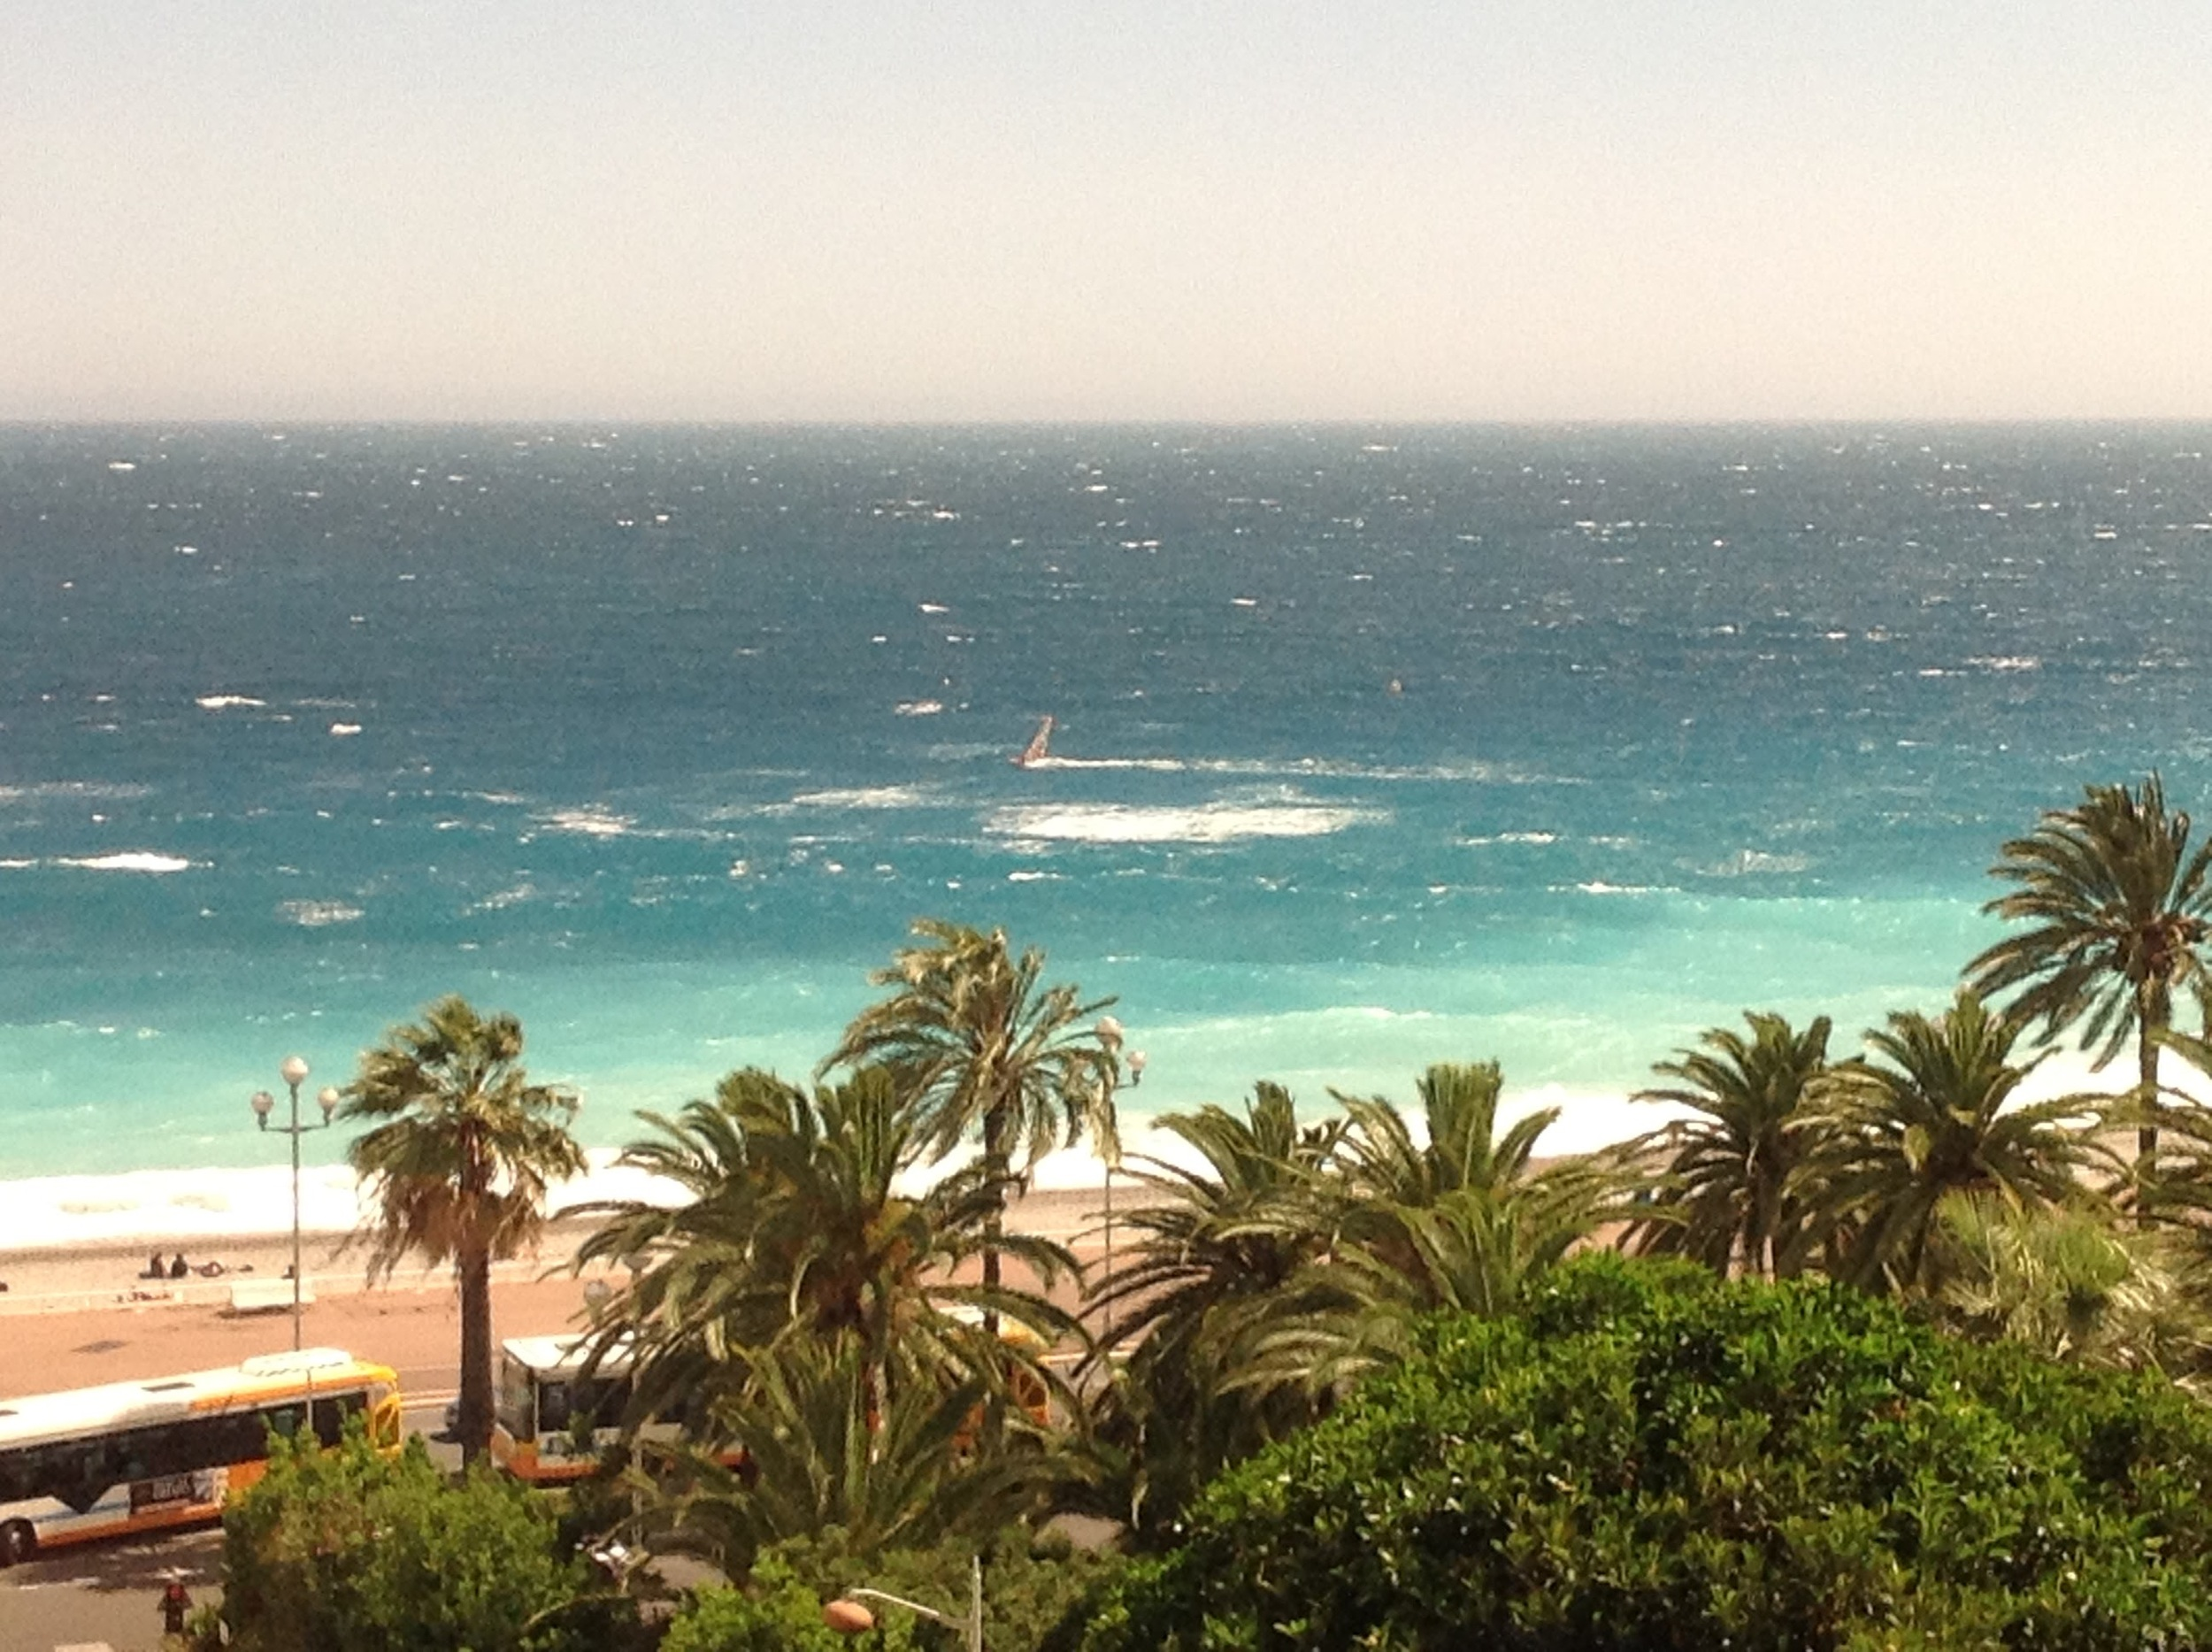 View from the Room. If the race had been today, they would have canceled the swim. The winds were gusting to 30mph.